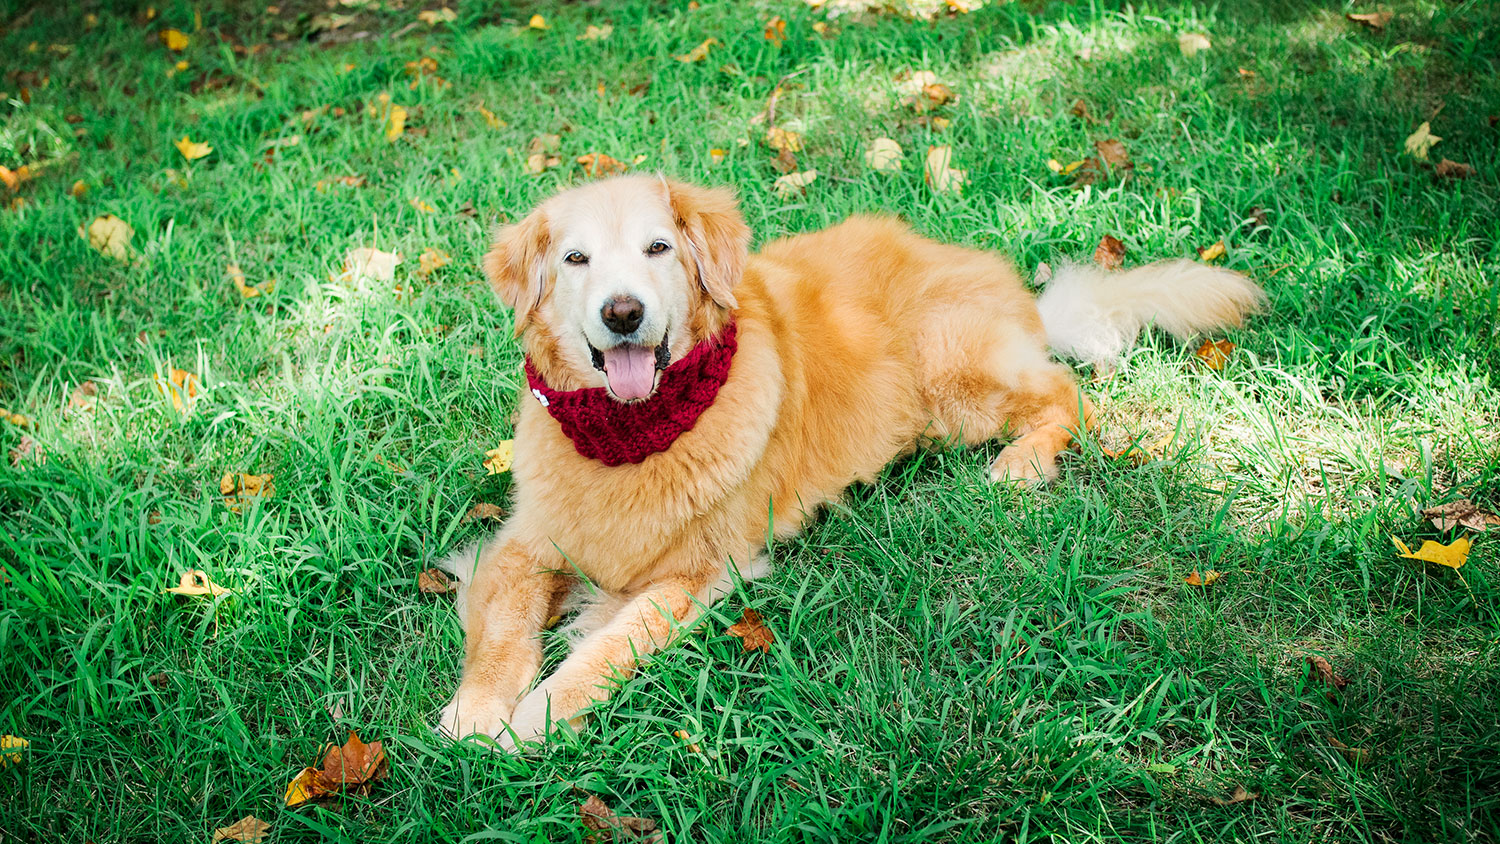 beautiful sugar faced golden retriever posing in the grass wearing a bright red knitted cowl